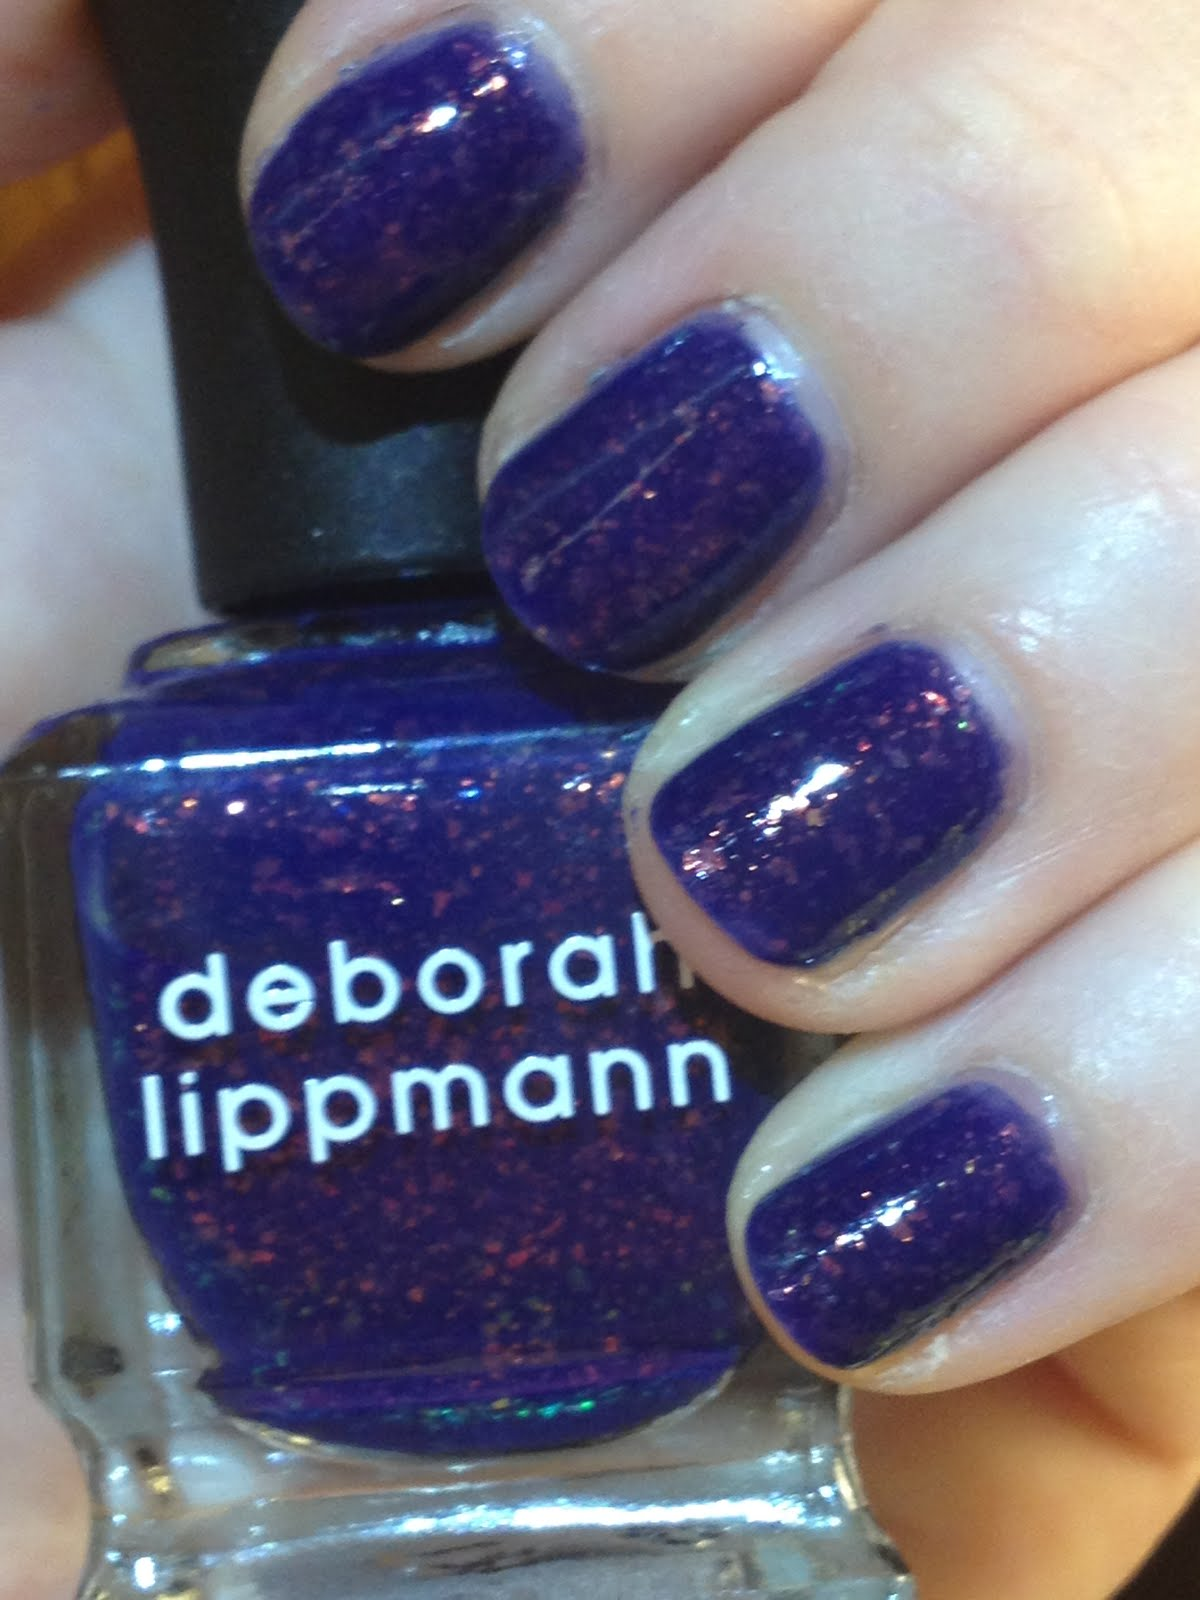 The Beauty of Life: Deborah Lippmann Ray Of Light Swatches